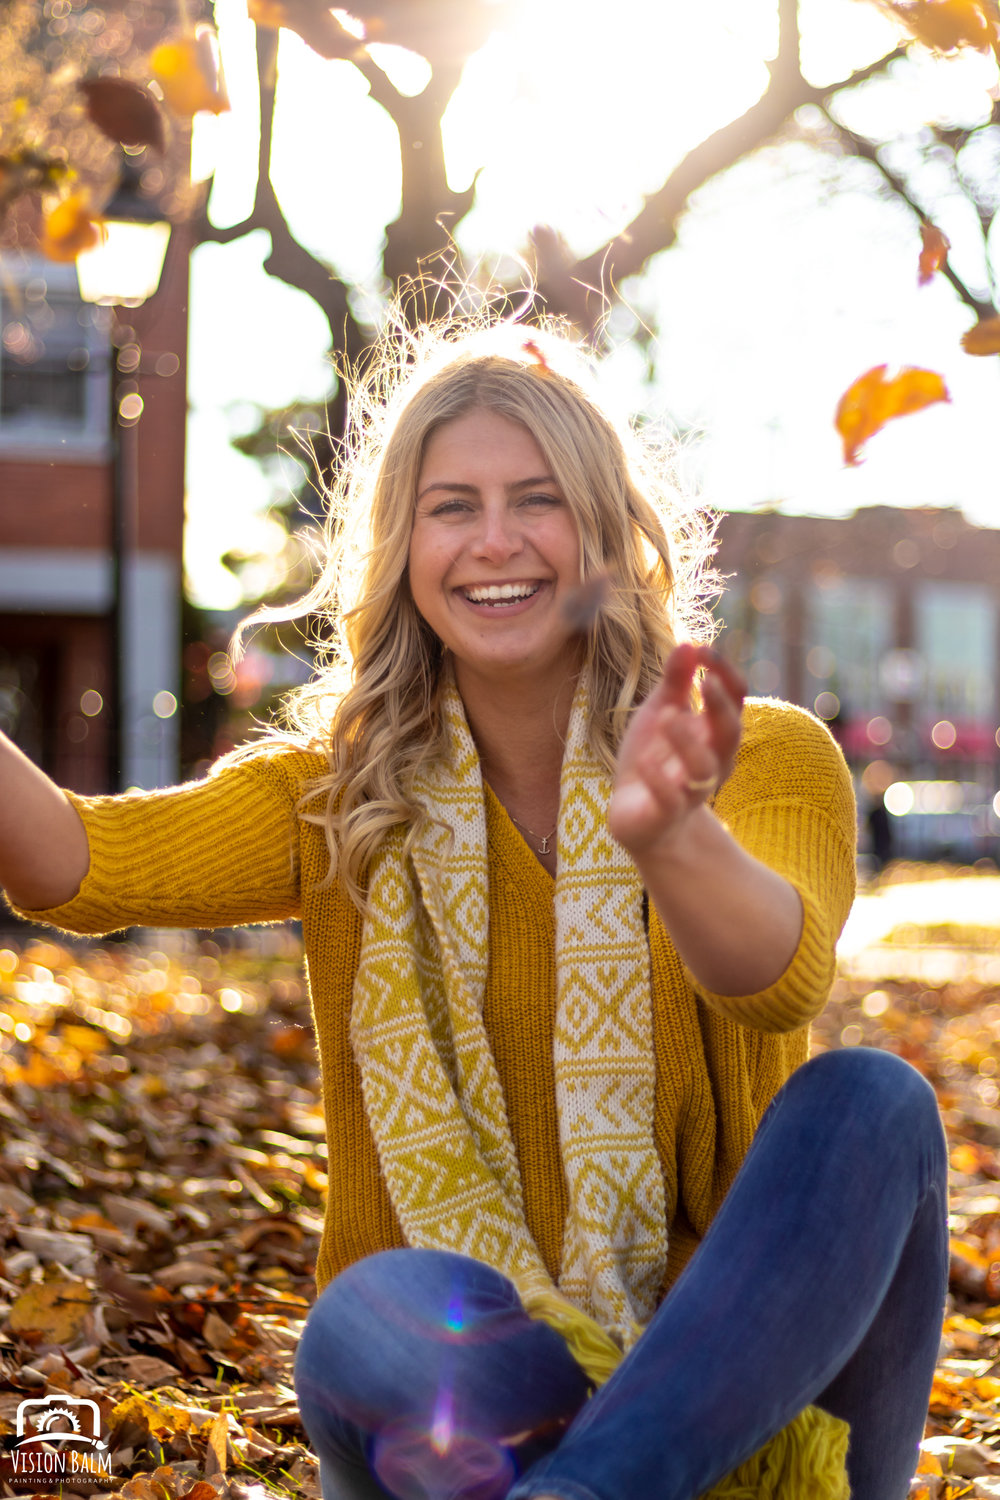 Professional fall portrait photography of model wearing a yellow sweater throwing leaves in downtown Newburyport, MA photographed by Vision Balm in Charleston, SC.